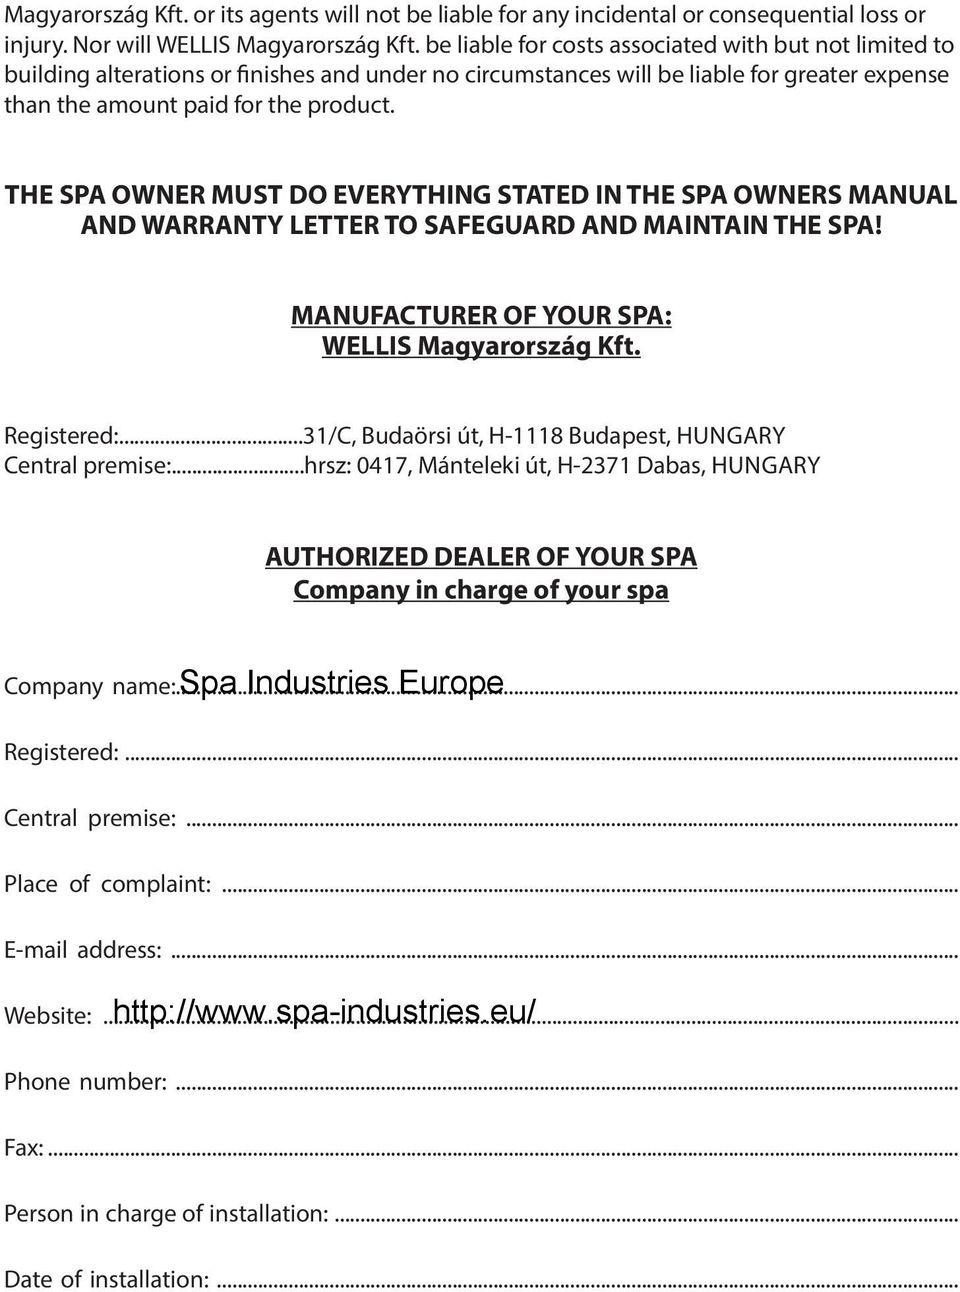 THE SPA OWNER MUST DO EVERYTHING STATED IN THE SPA OWNERS MANUAL AND WARRANTY LETTER TO SAFEGUARD AND MAINTAIN THE SPA! MANUFACTURER OF YOUR SPA: WELLIS Magyarország Kft. Registered:.